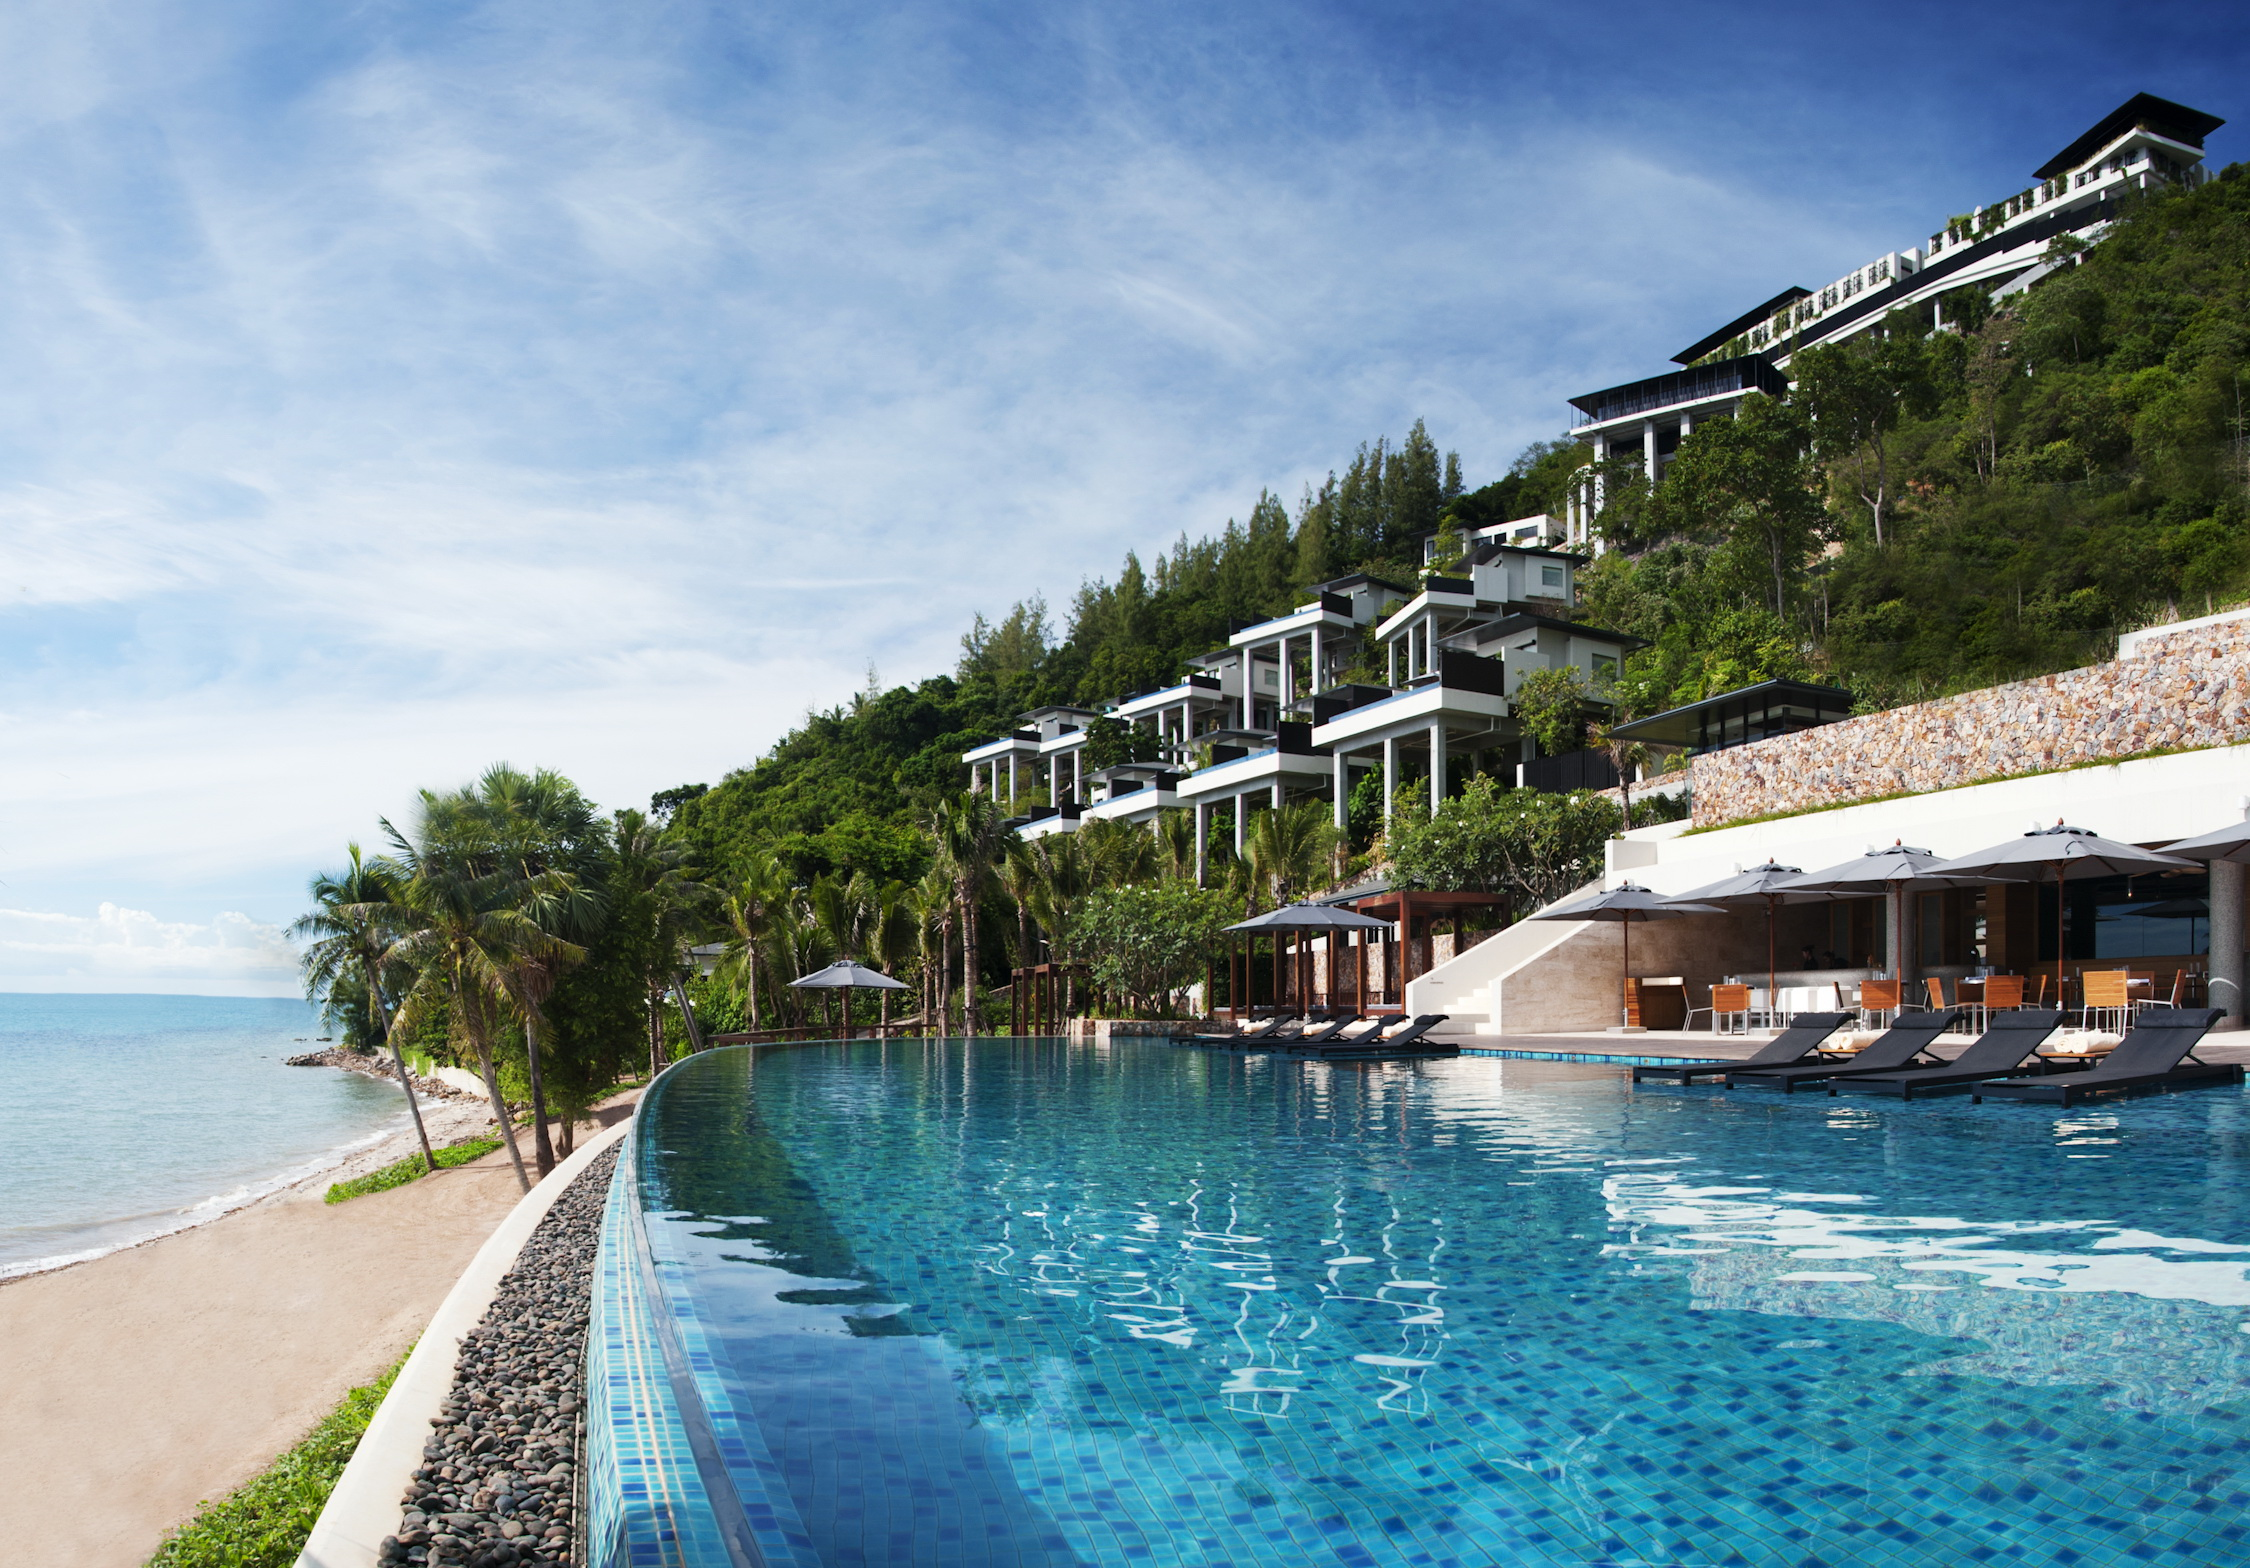 Conrad Koh Samui Awarded the World's Best Luxury Hideaway Resort | Samui Times